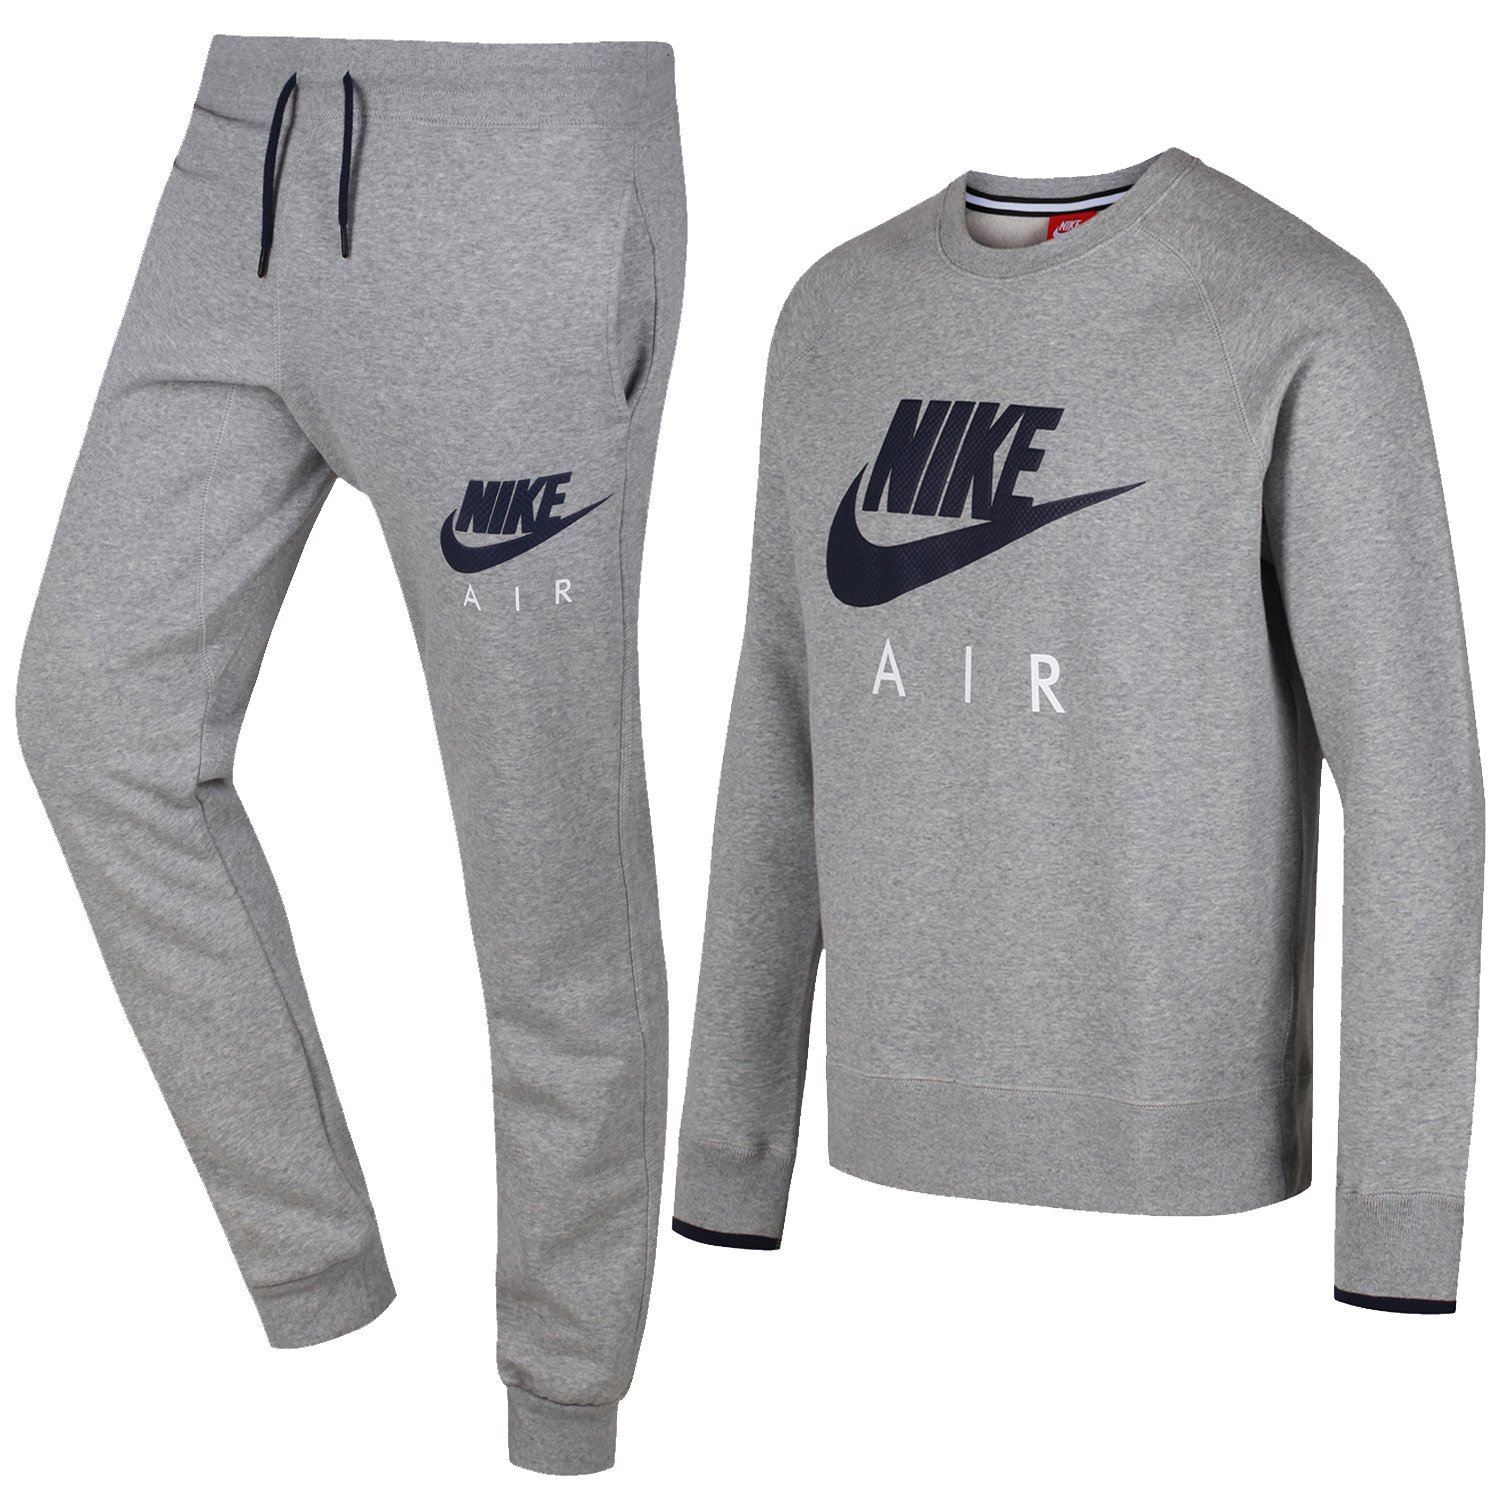 better price for complete range of articles top-rated fashion Details about NIKE MEN'S TRACKSUITS AIR SWOOSH HYBRID TRIBUTE BLACK NAVY  GREY S M L XL FLEECE